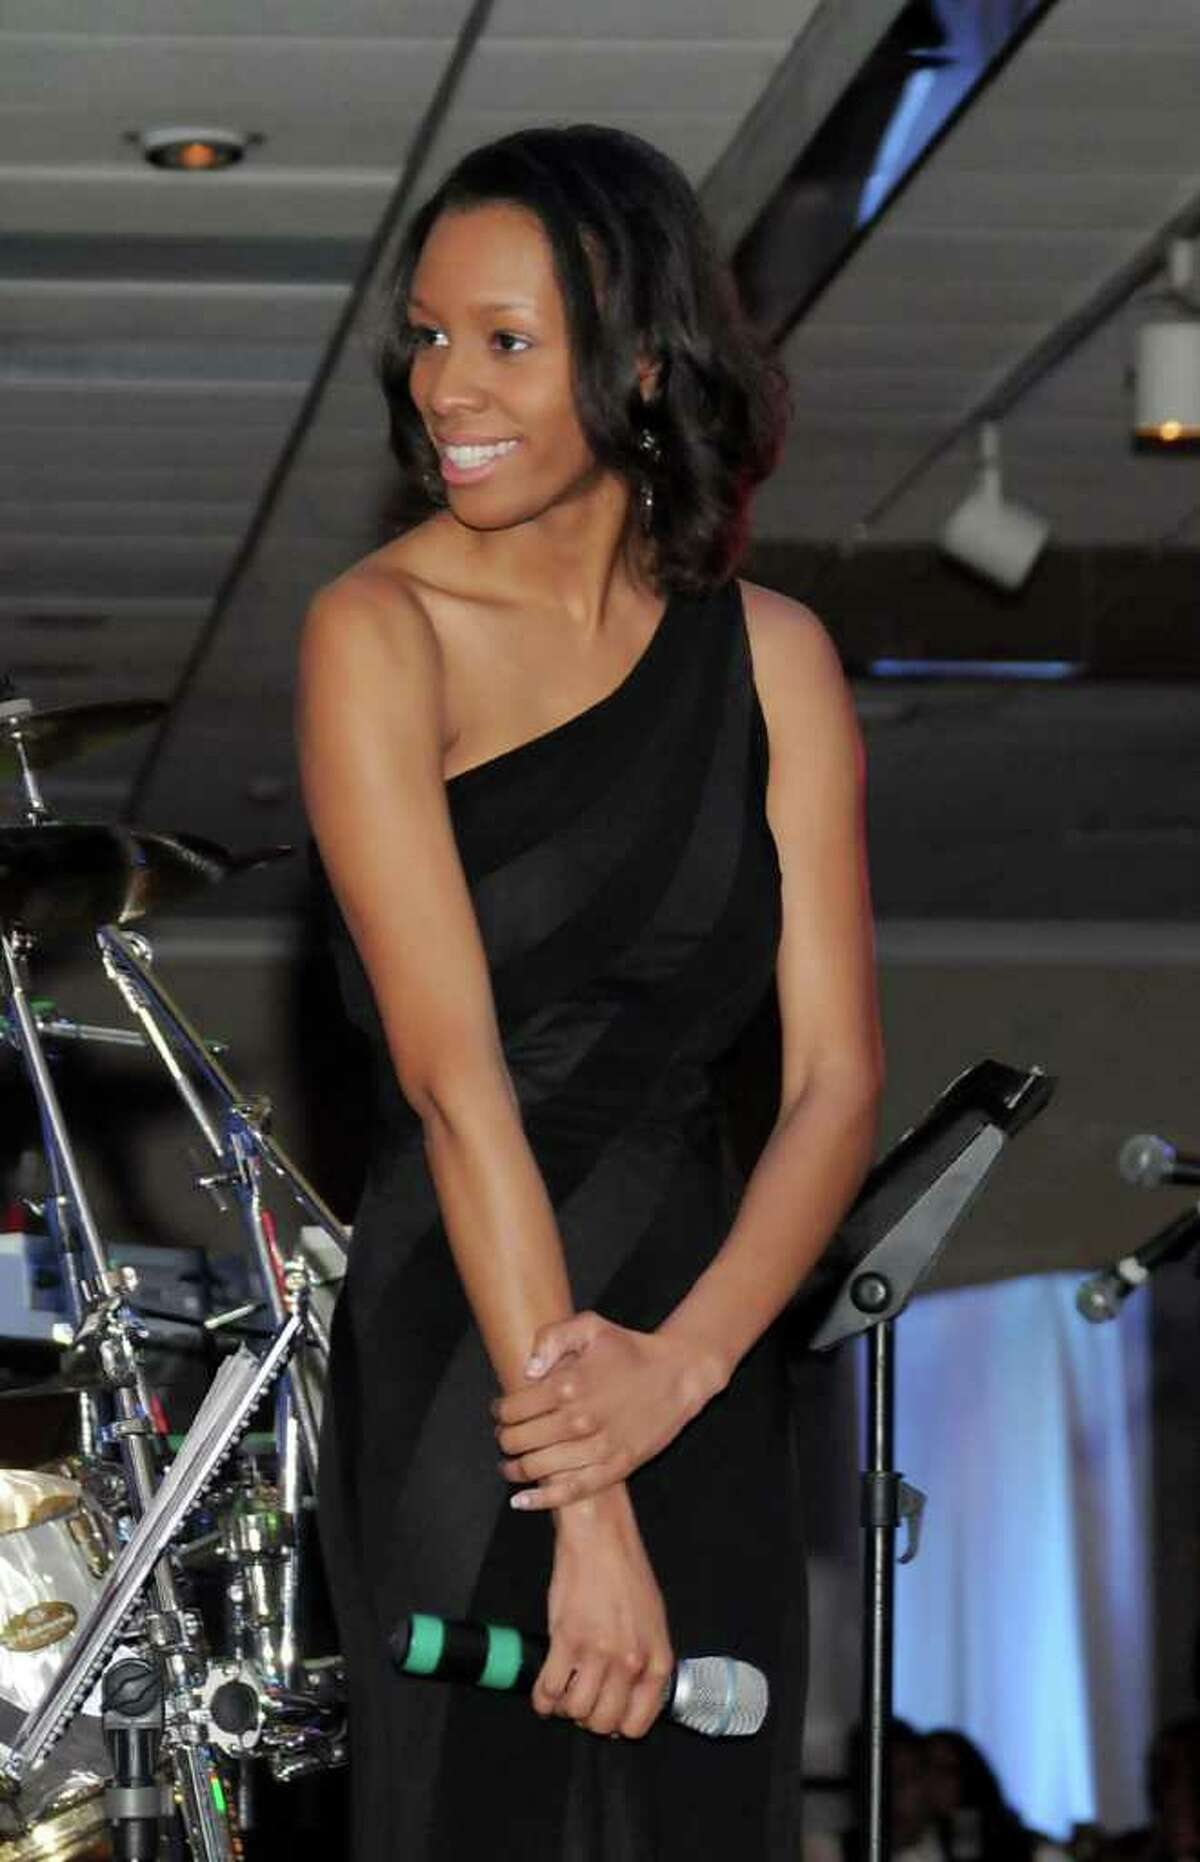 The Hord Foundation Inc. held it's 22nd Annual Gala at the Amber Room Colonnade in Danbury on Saturday Feb. 27, 2011. Danbury native, Simone Hill, a Hord scholarship recipient.